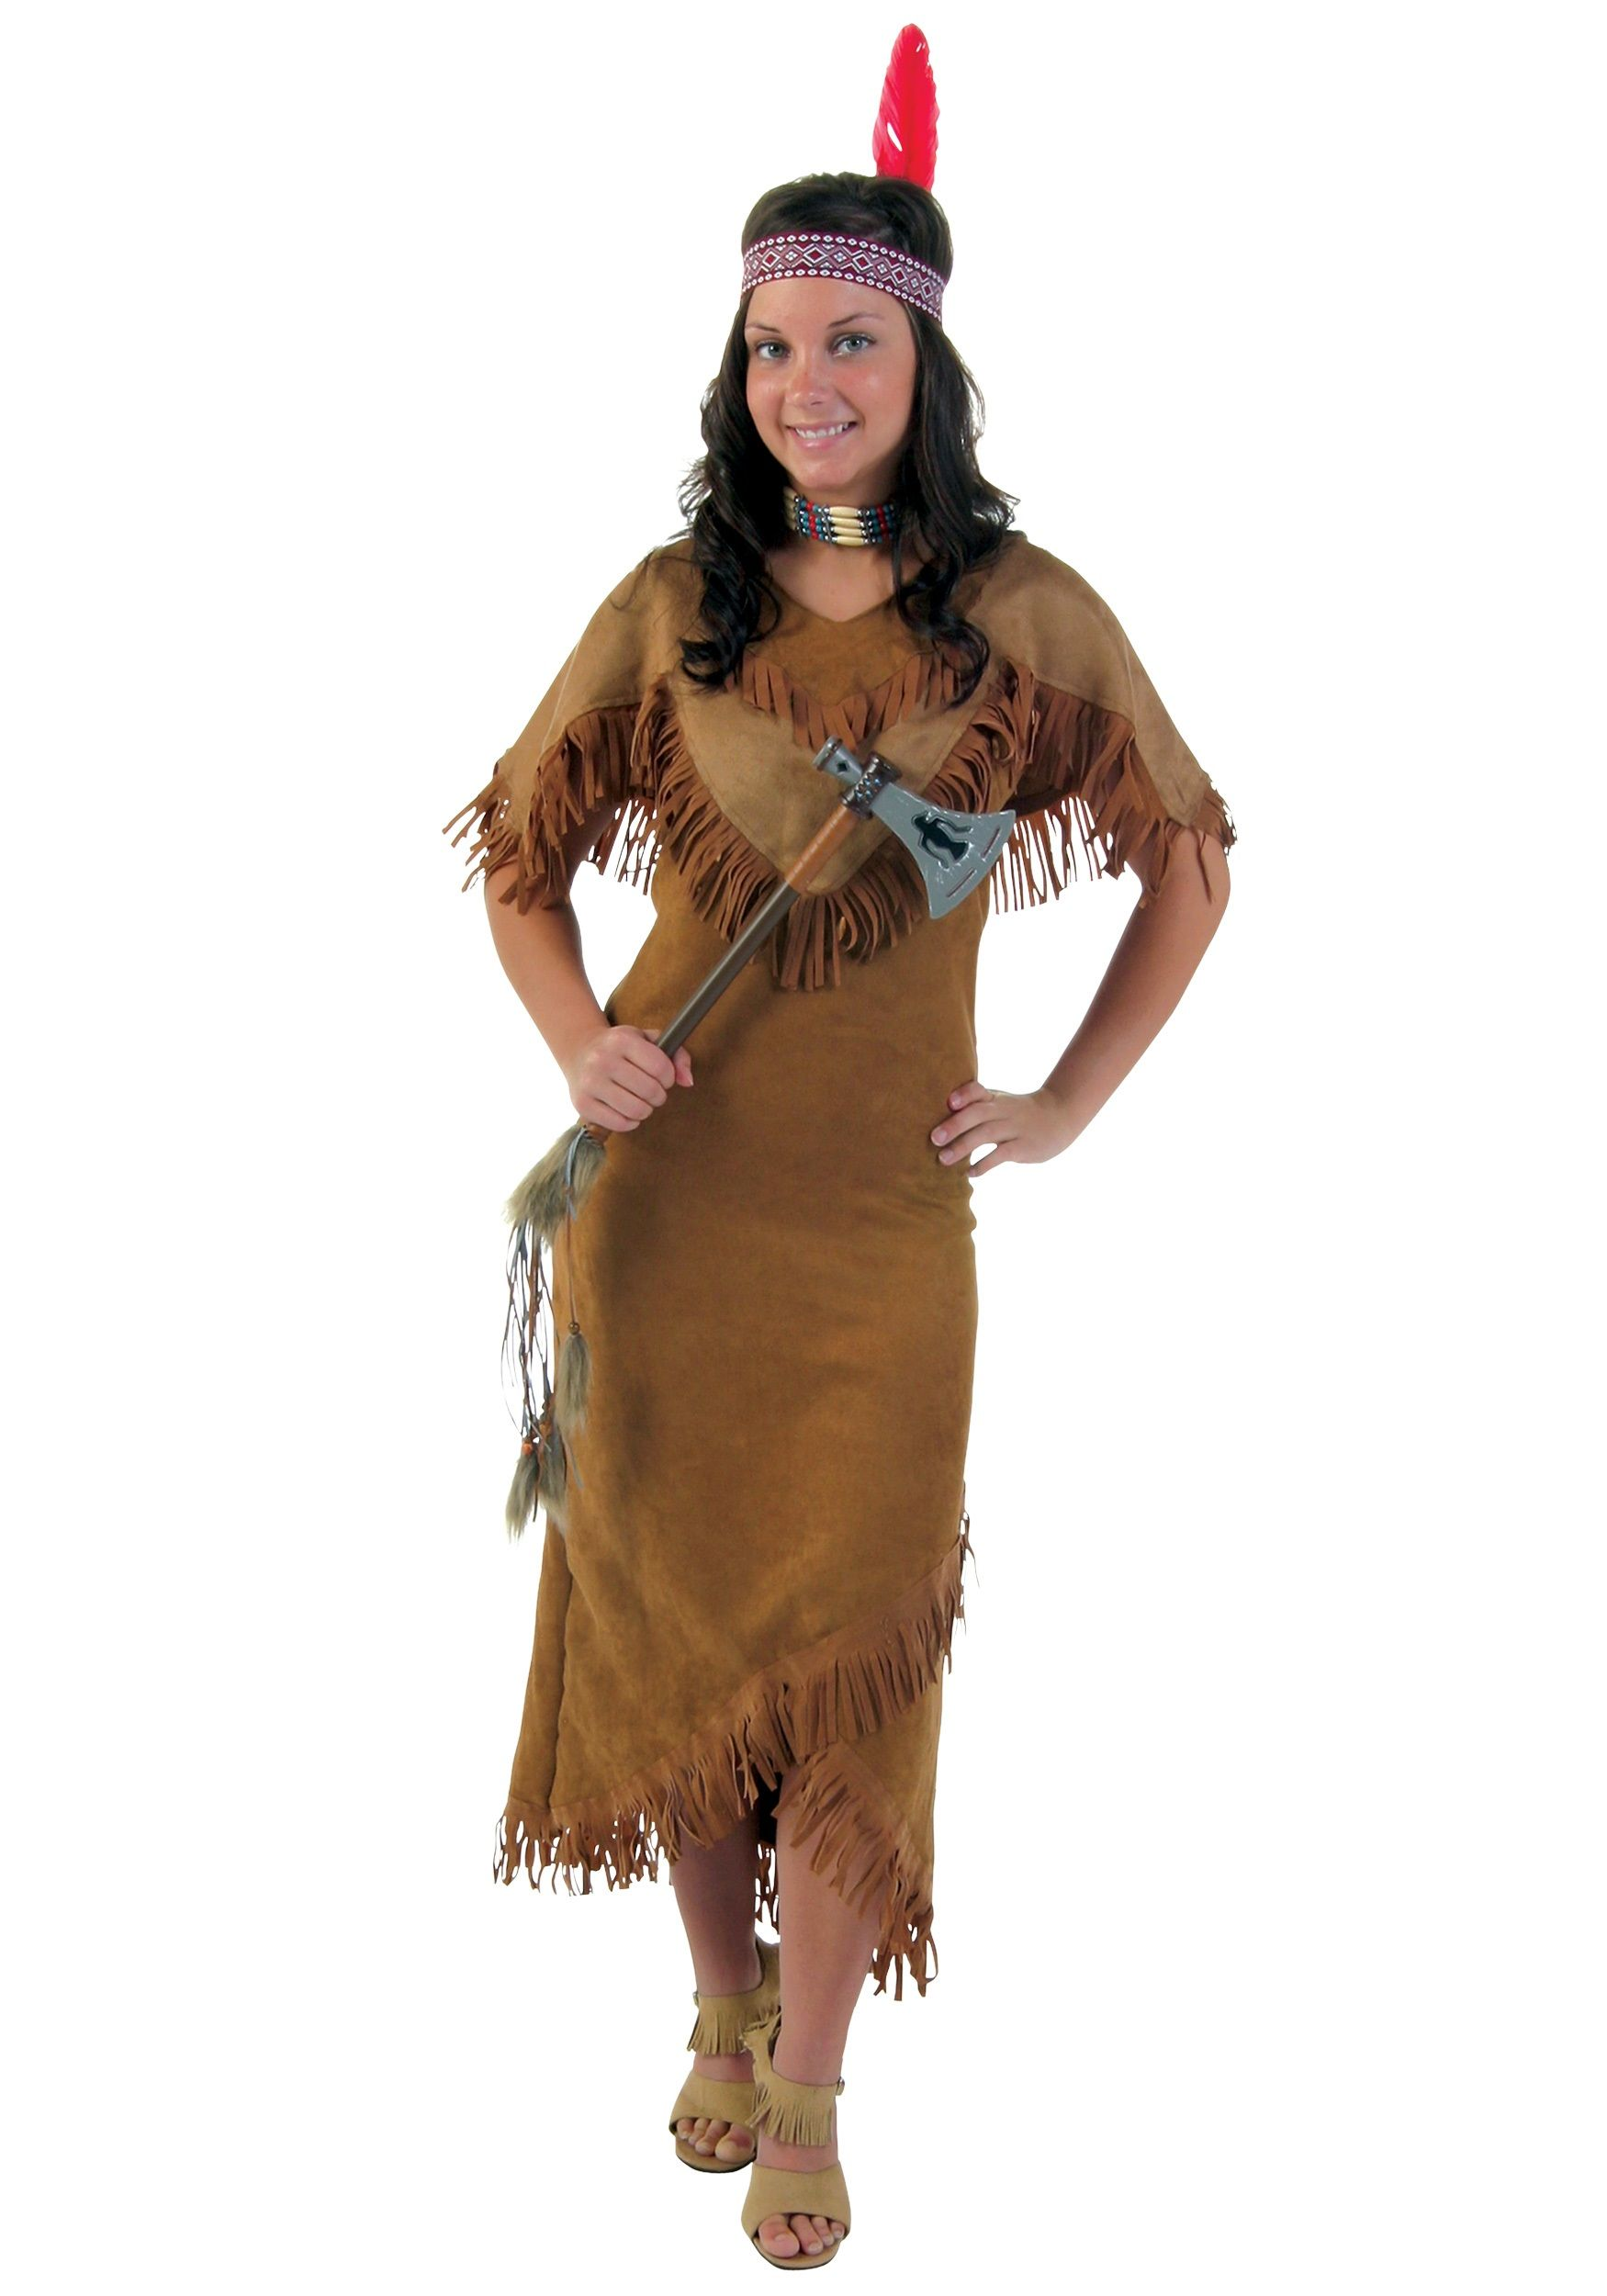 western wear home made costume | ... Costumes Indian Costumes Adult Indian Costumes Sacagawea Costume  sc 1 st  Pinterest & western wear home made costume | ... Costumes Indian Costumes Adult ...